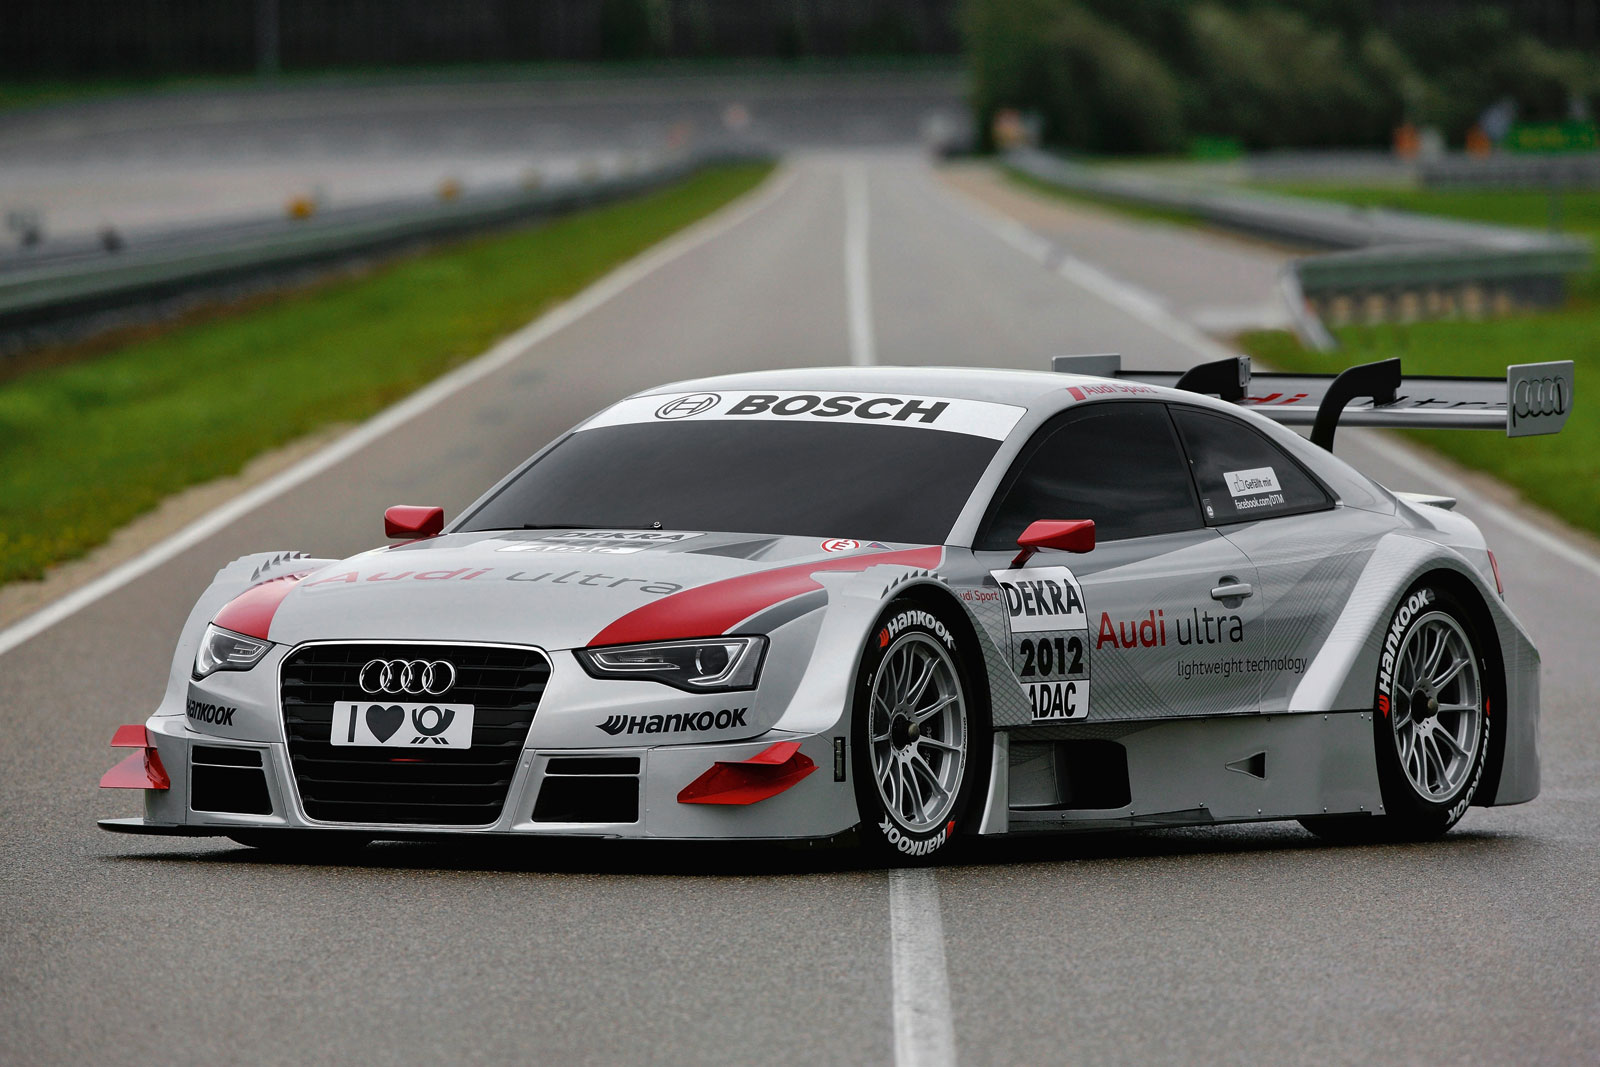 Sport Cars Audi A5 DTM Race Car hd Wallpapers 2012 1600x1067